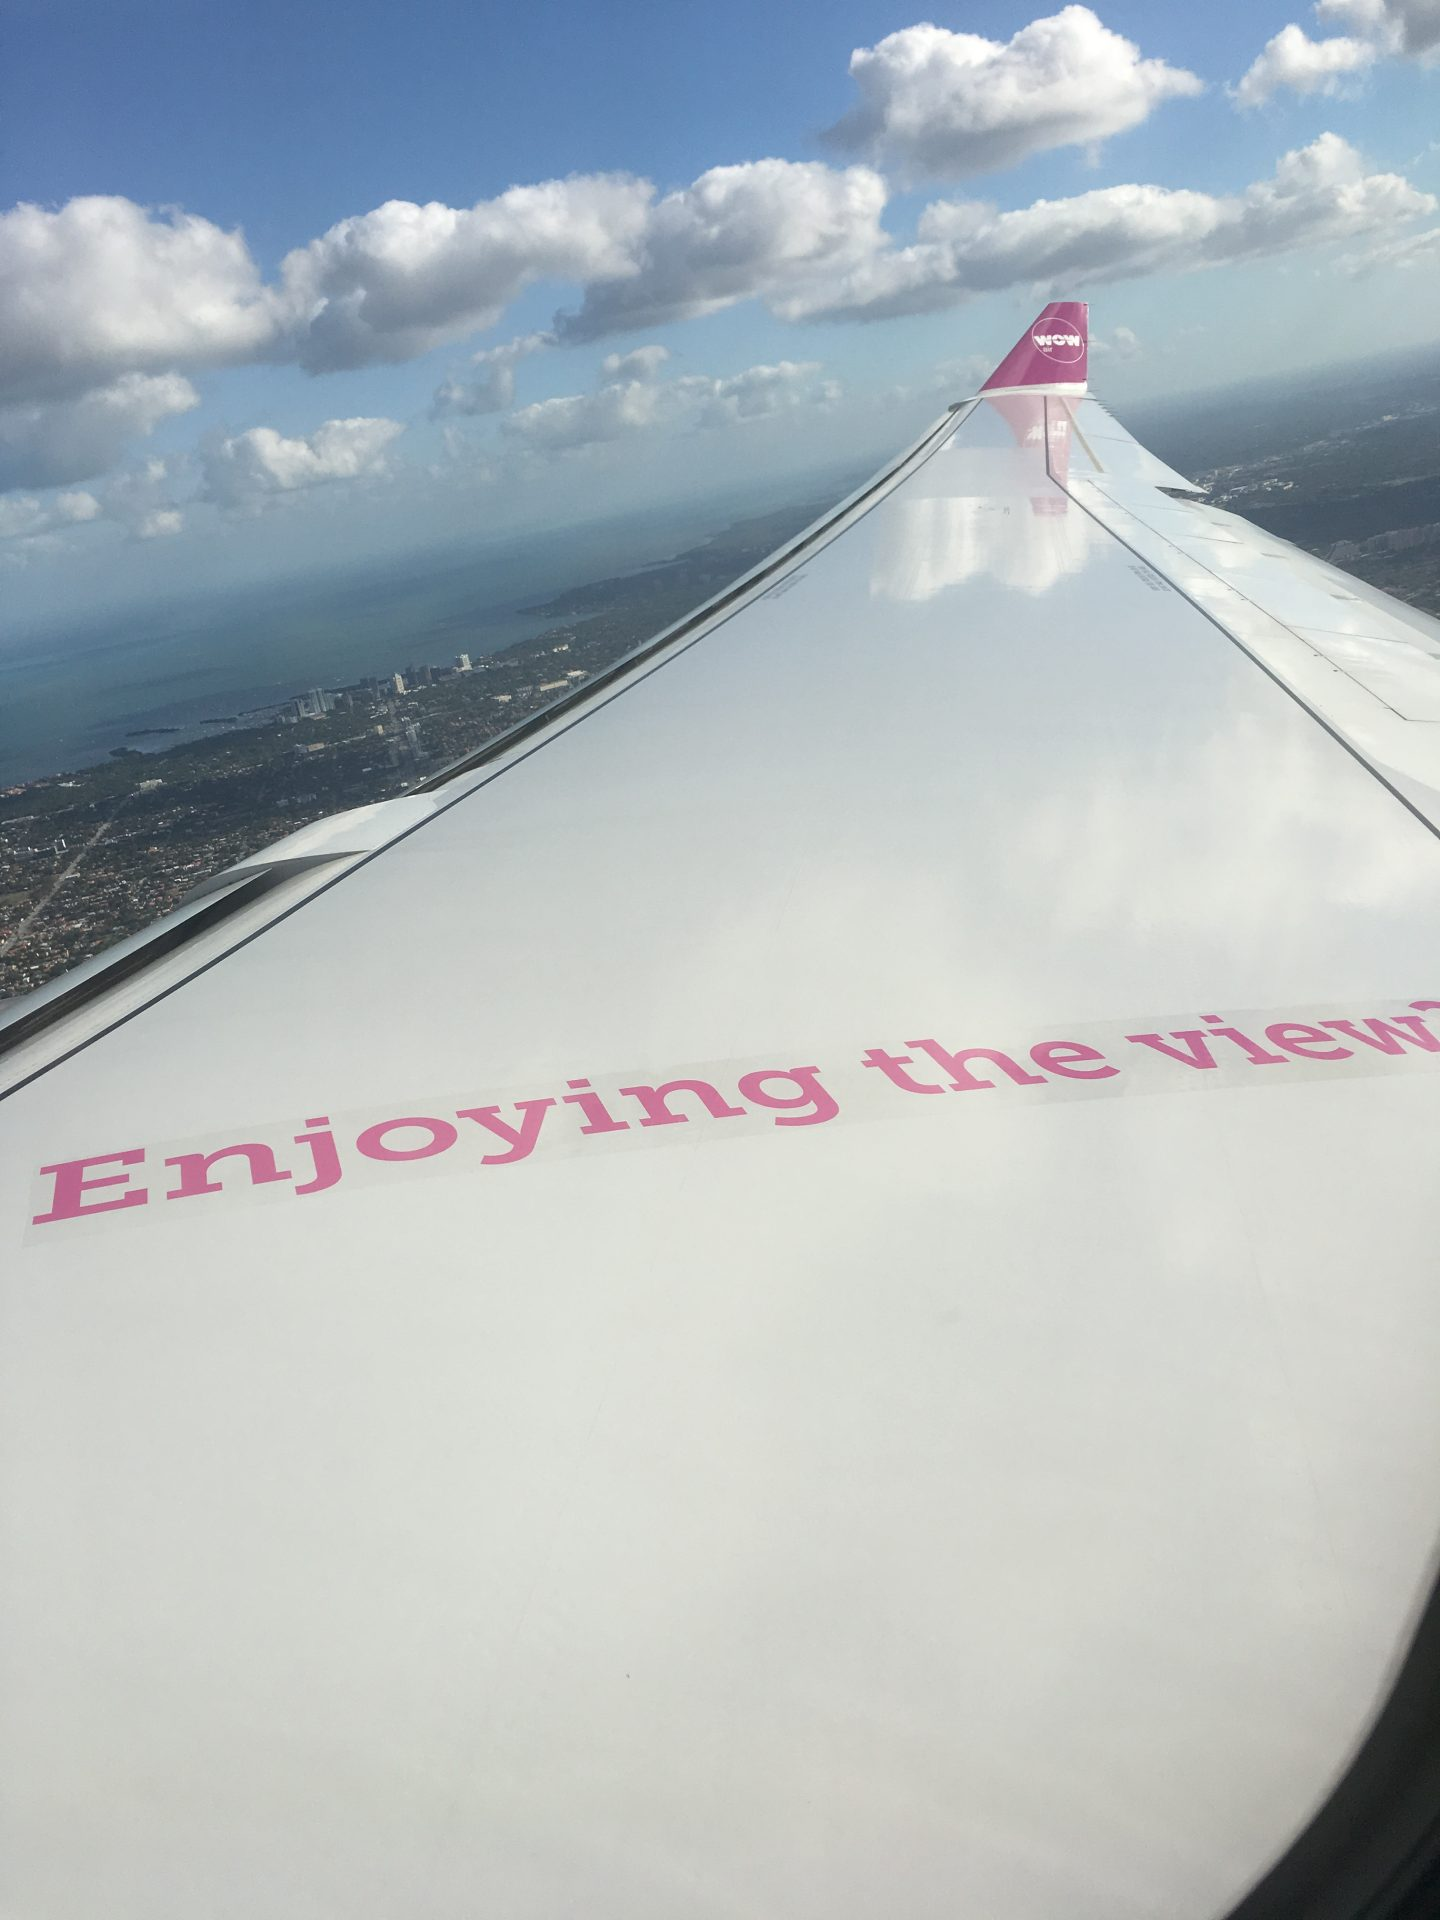 Illustrated by Sade - Photo of the airplane wing while flying on my way traveling from Miami to Iceland.